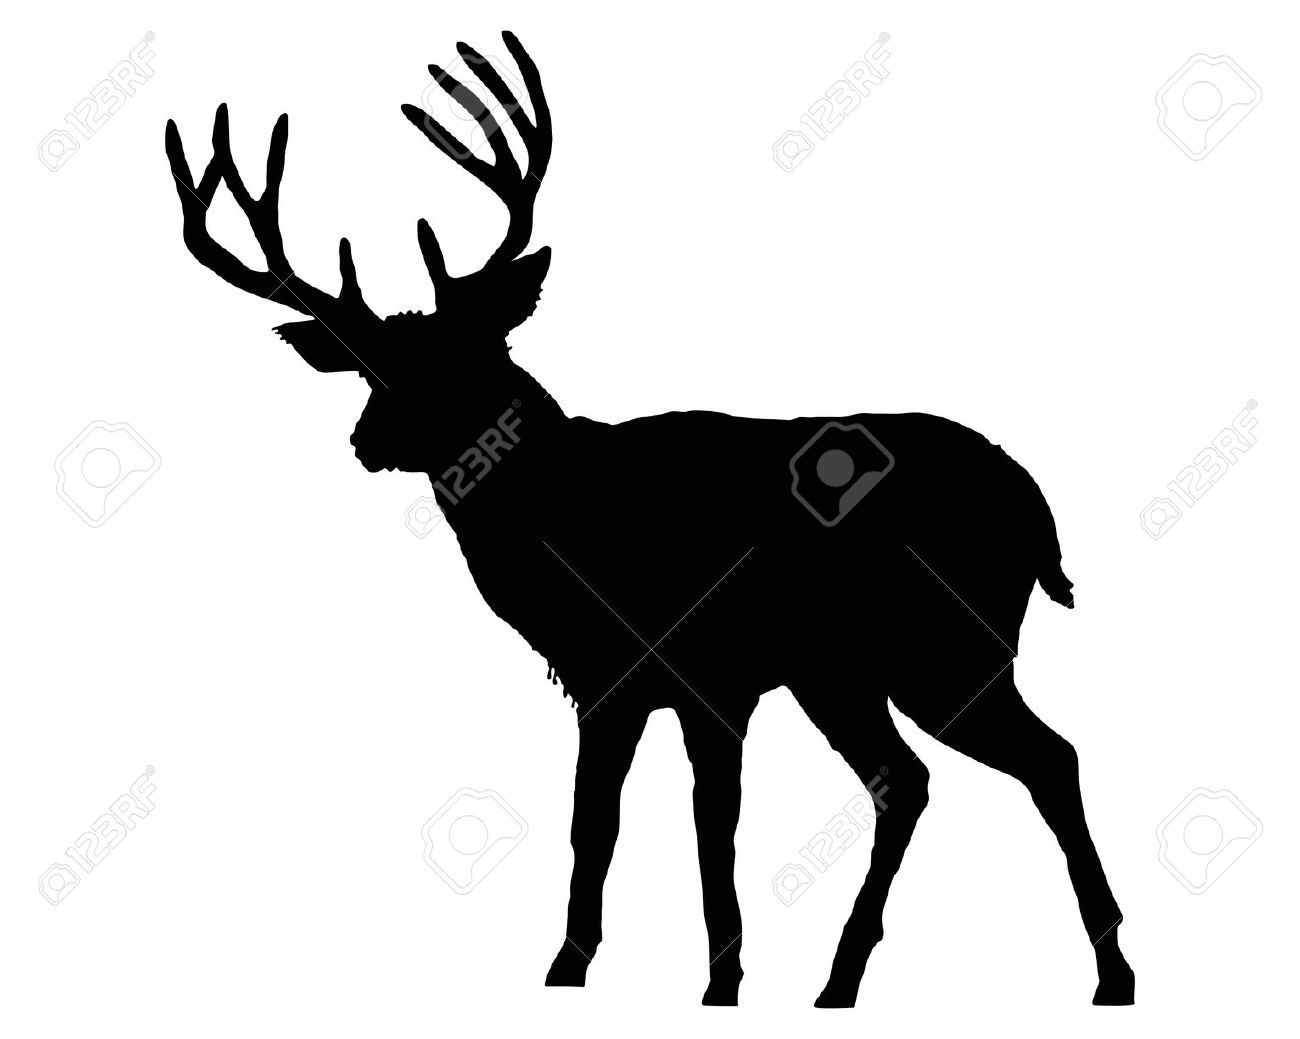 stag silhouette - Google Search